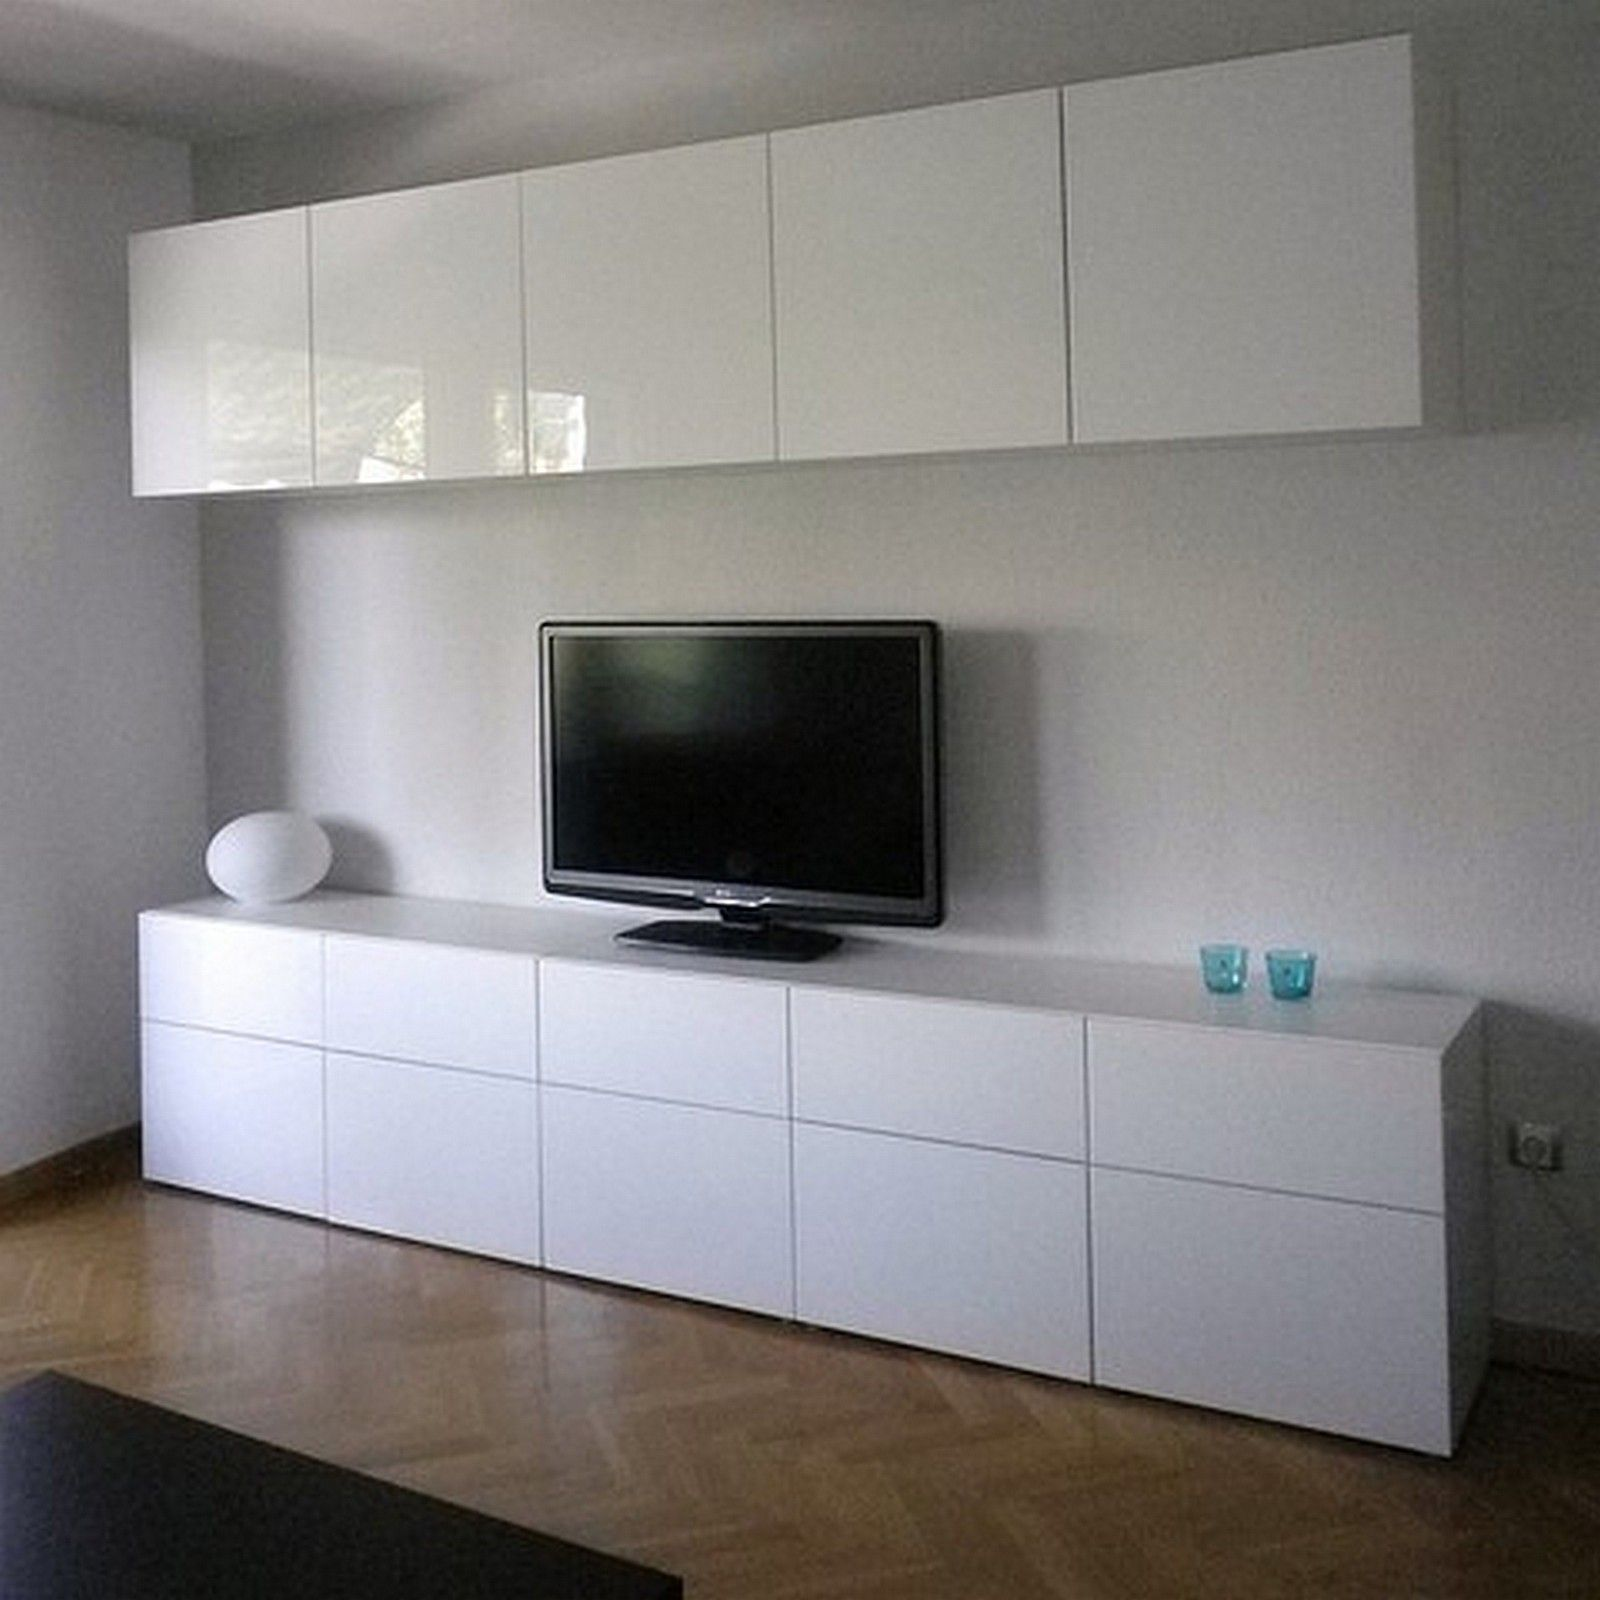 Ikea Besta Neu Ikea Besta Cabinets With High Gloss Doors In Living Room